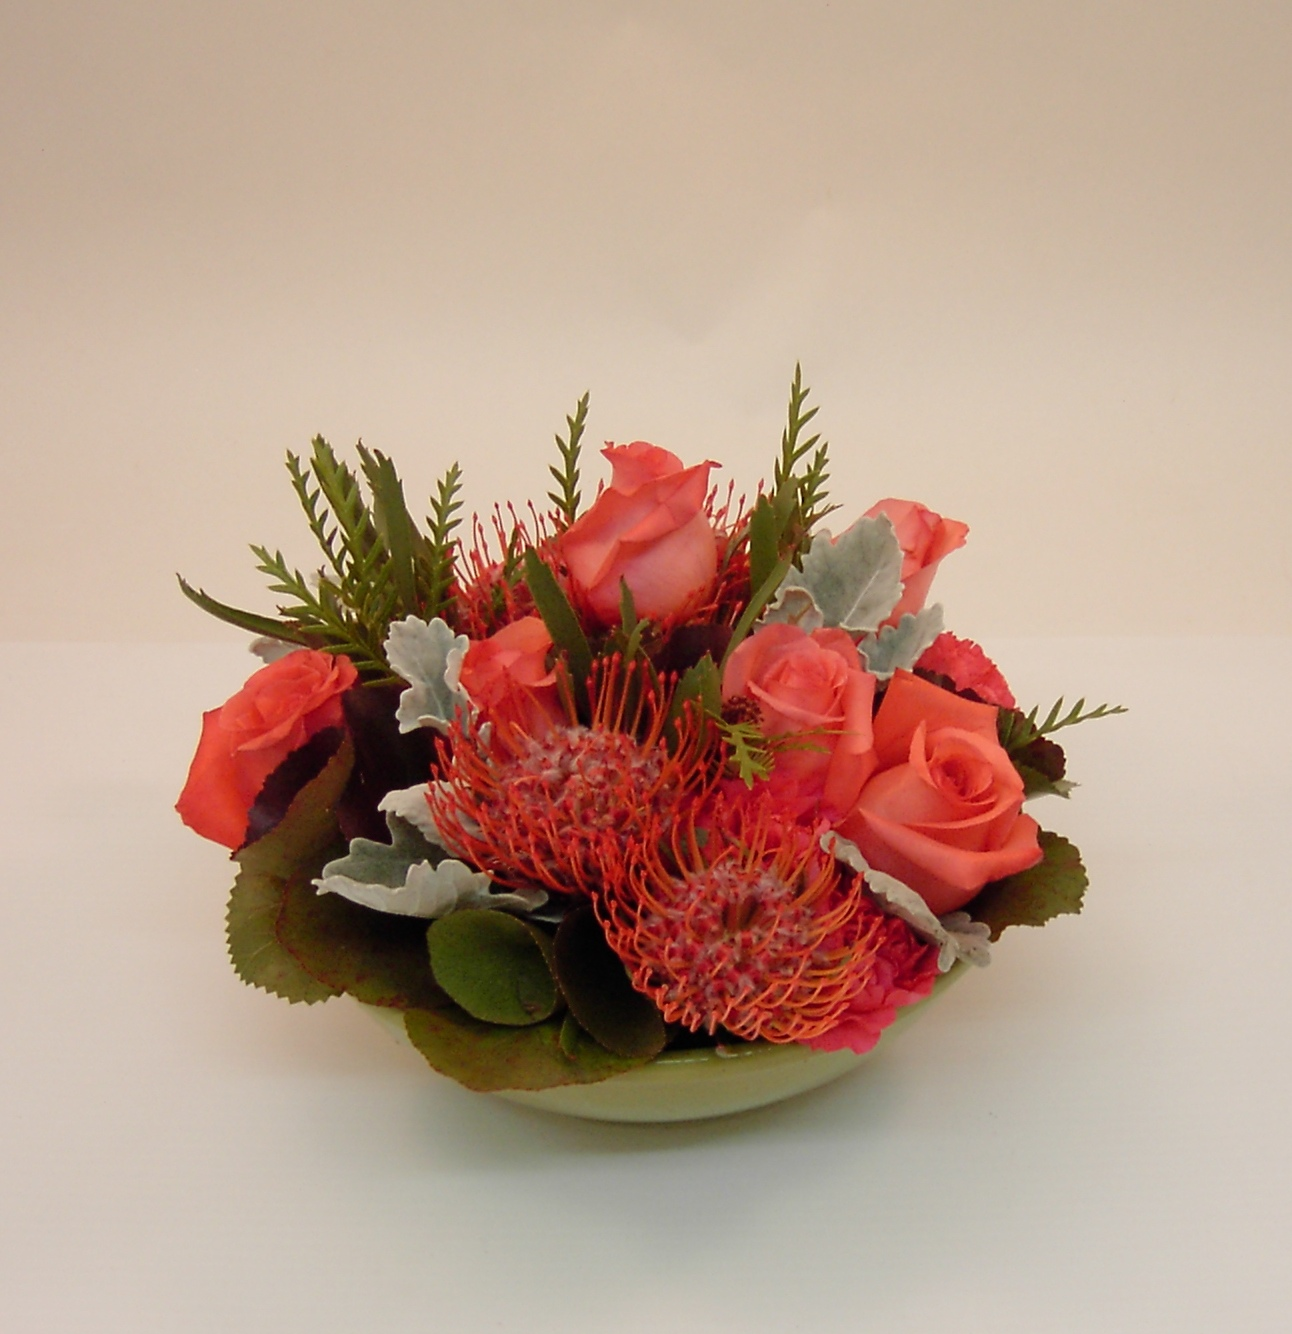 Floral Arrangement with lots of texture